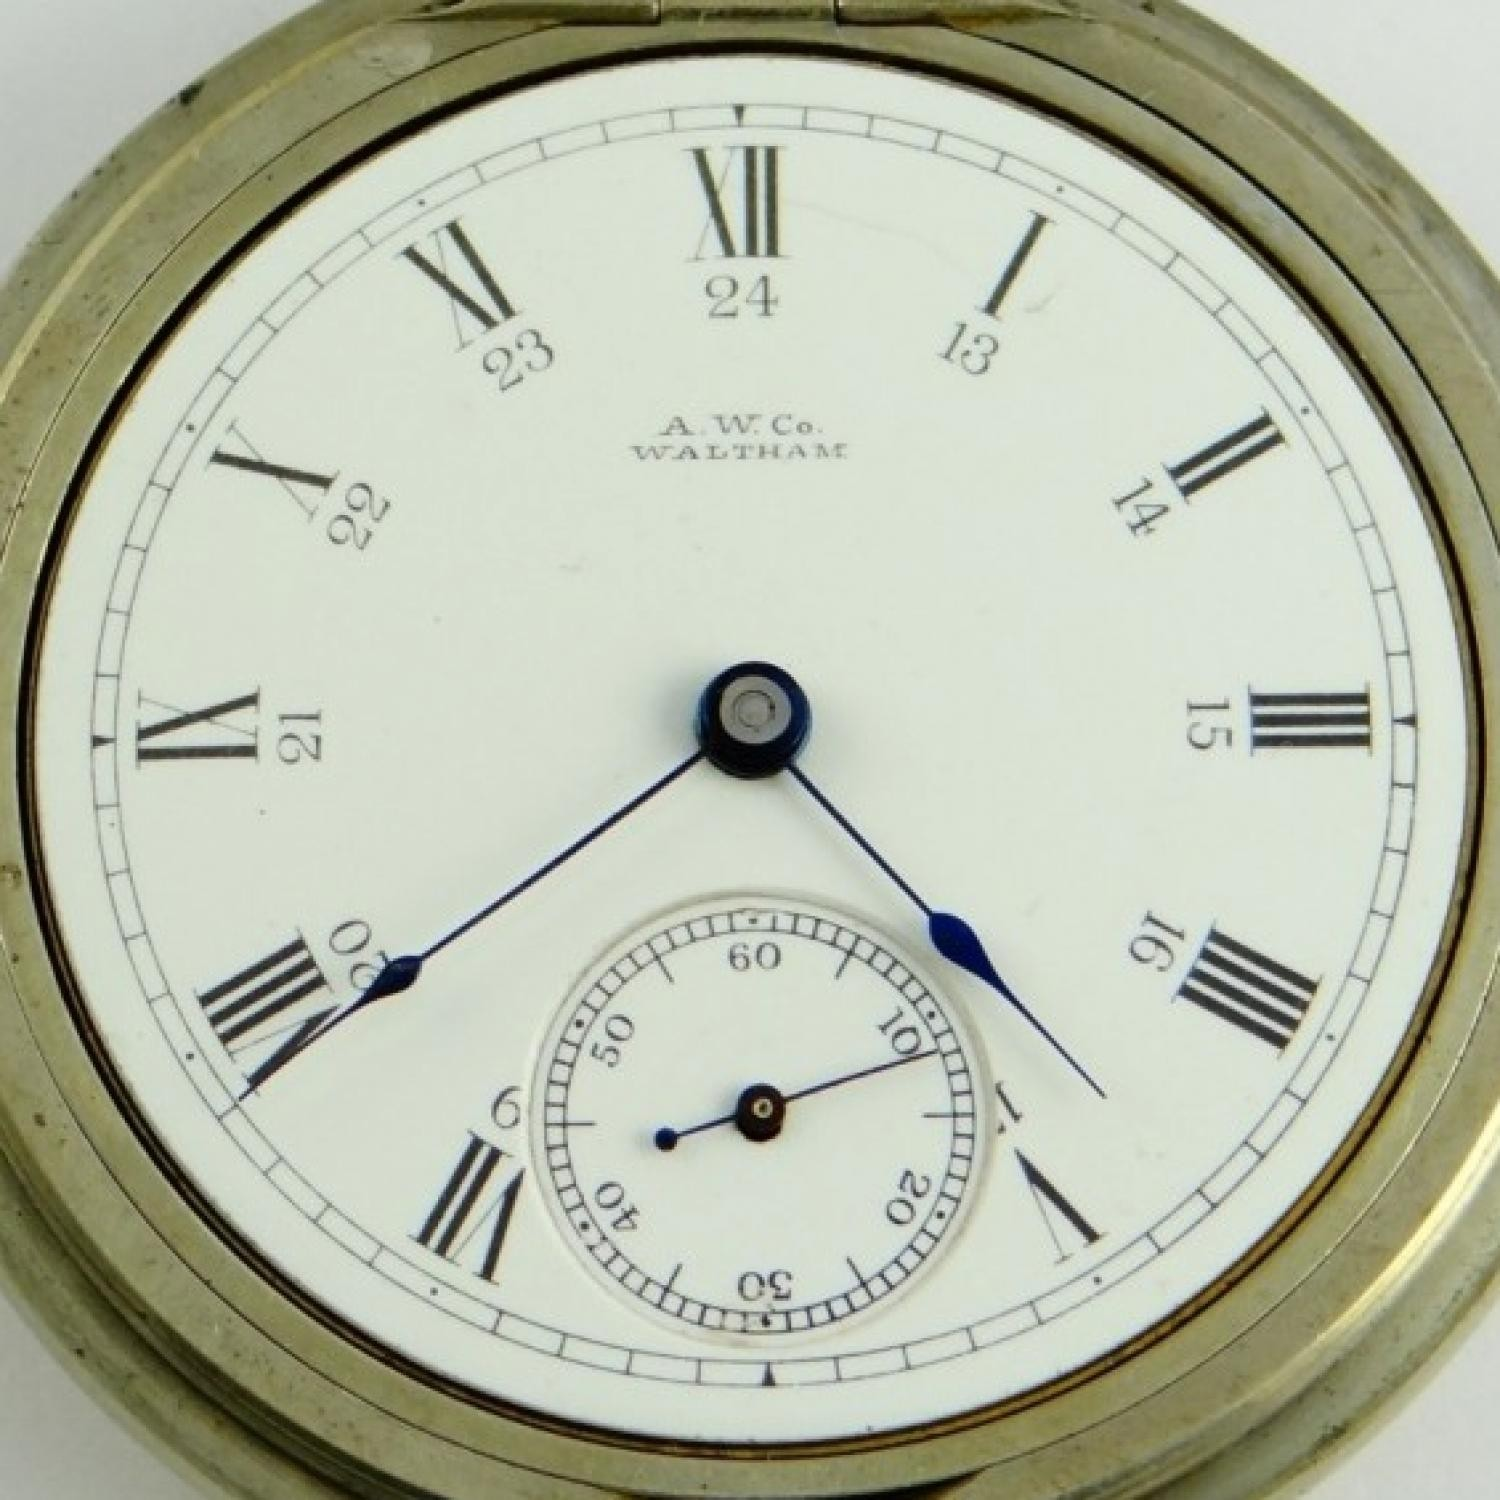 Image of Waltham No. 3 #4754338 Dial